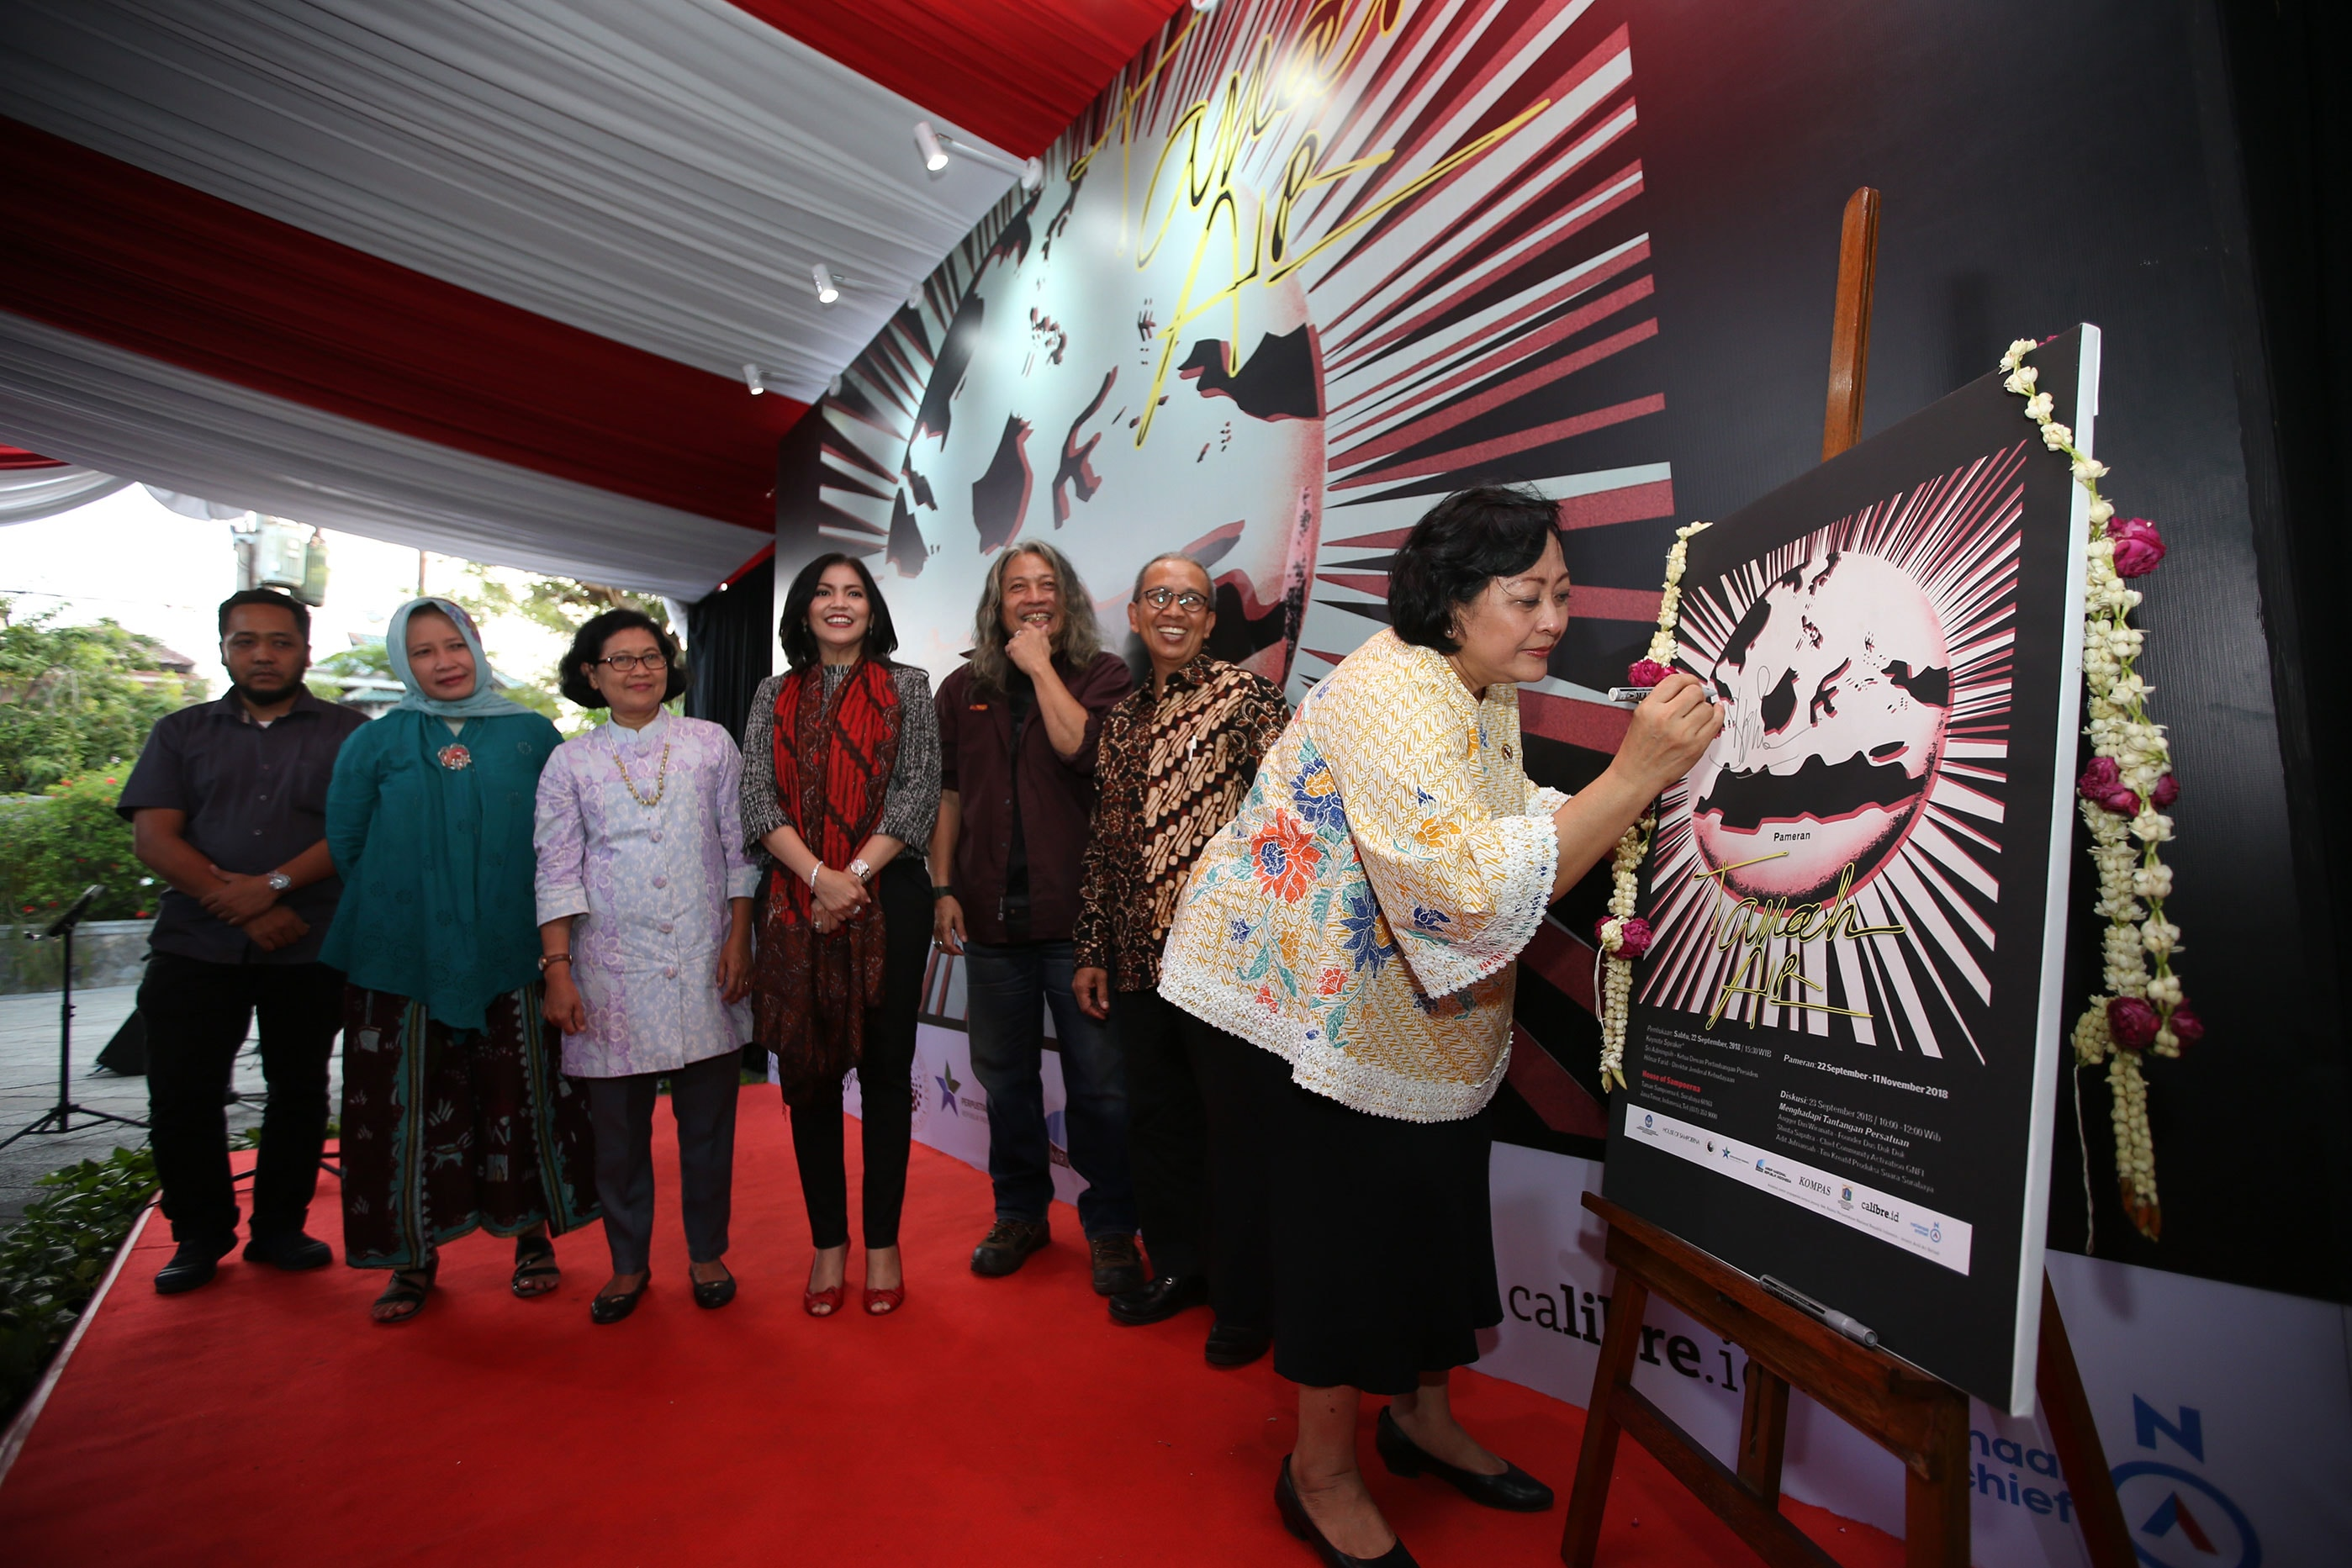 Sampoerna Holds Tanah Air Exhibition And Youth Discussion To Dji Sam Soe Keretek 12 Commemorate Pledge